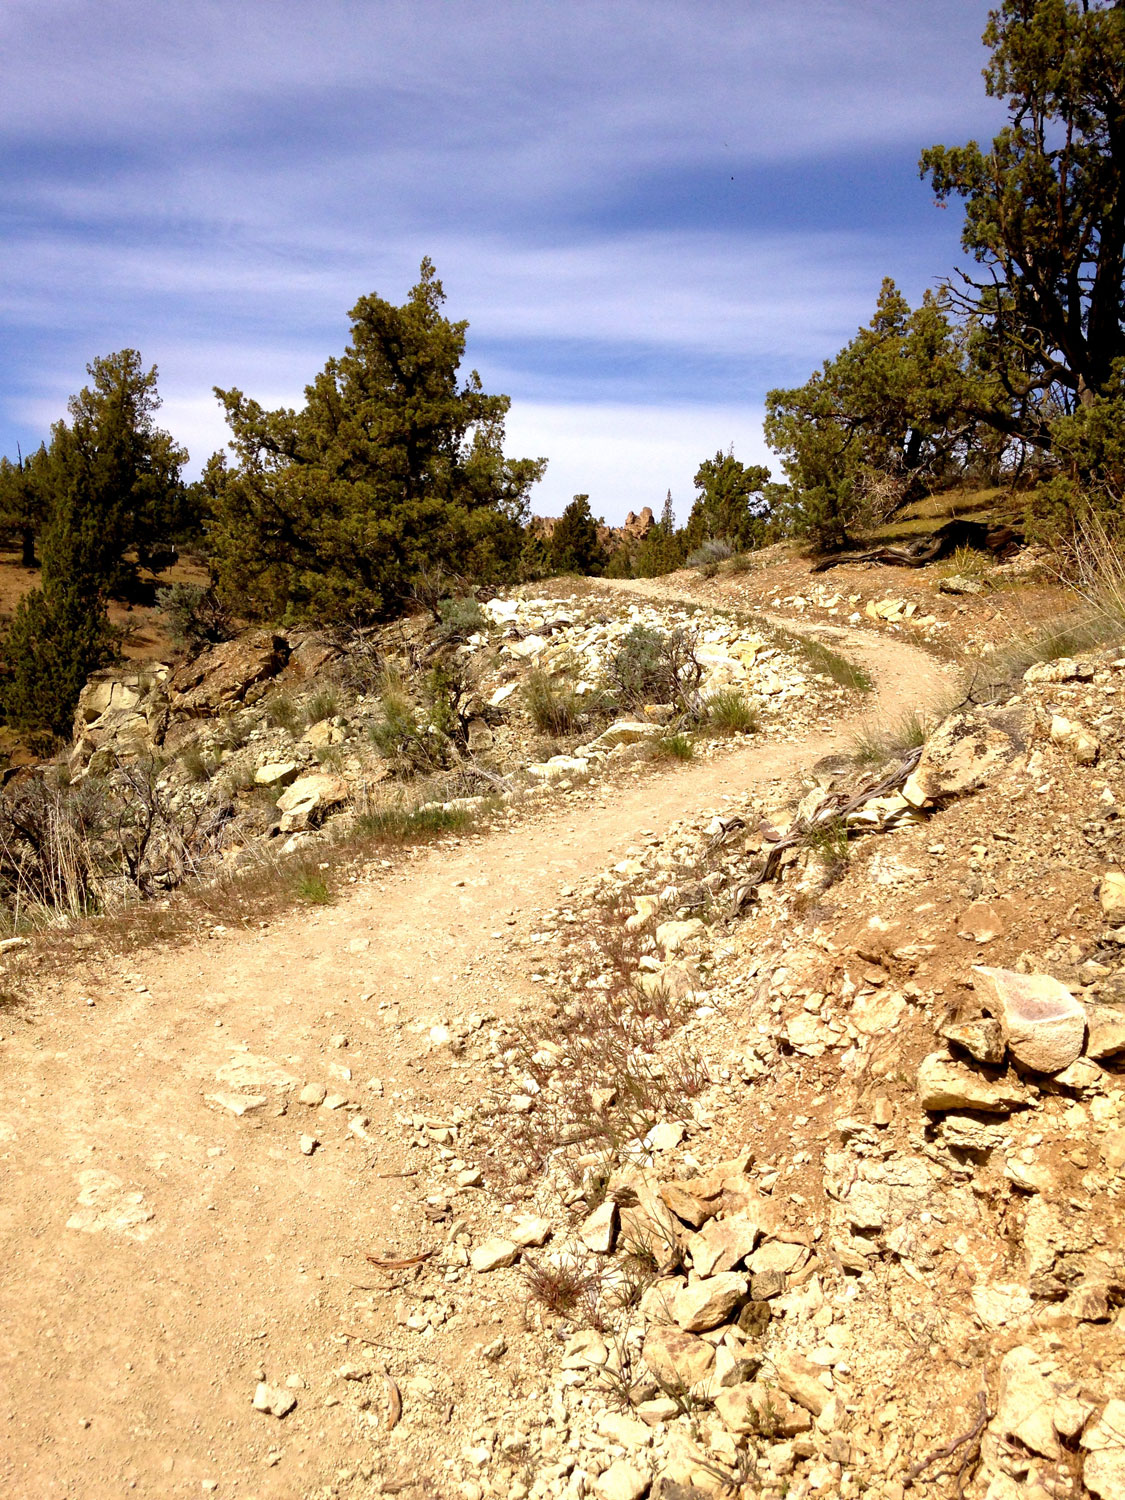 The Summit Trail continues to gain elevation at Smith Rock State Park.